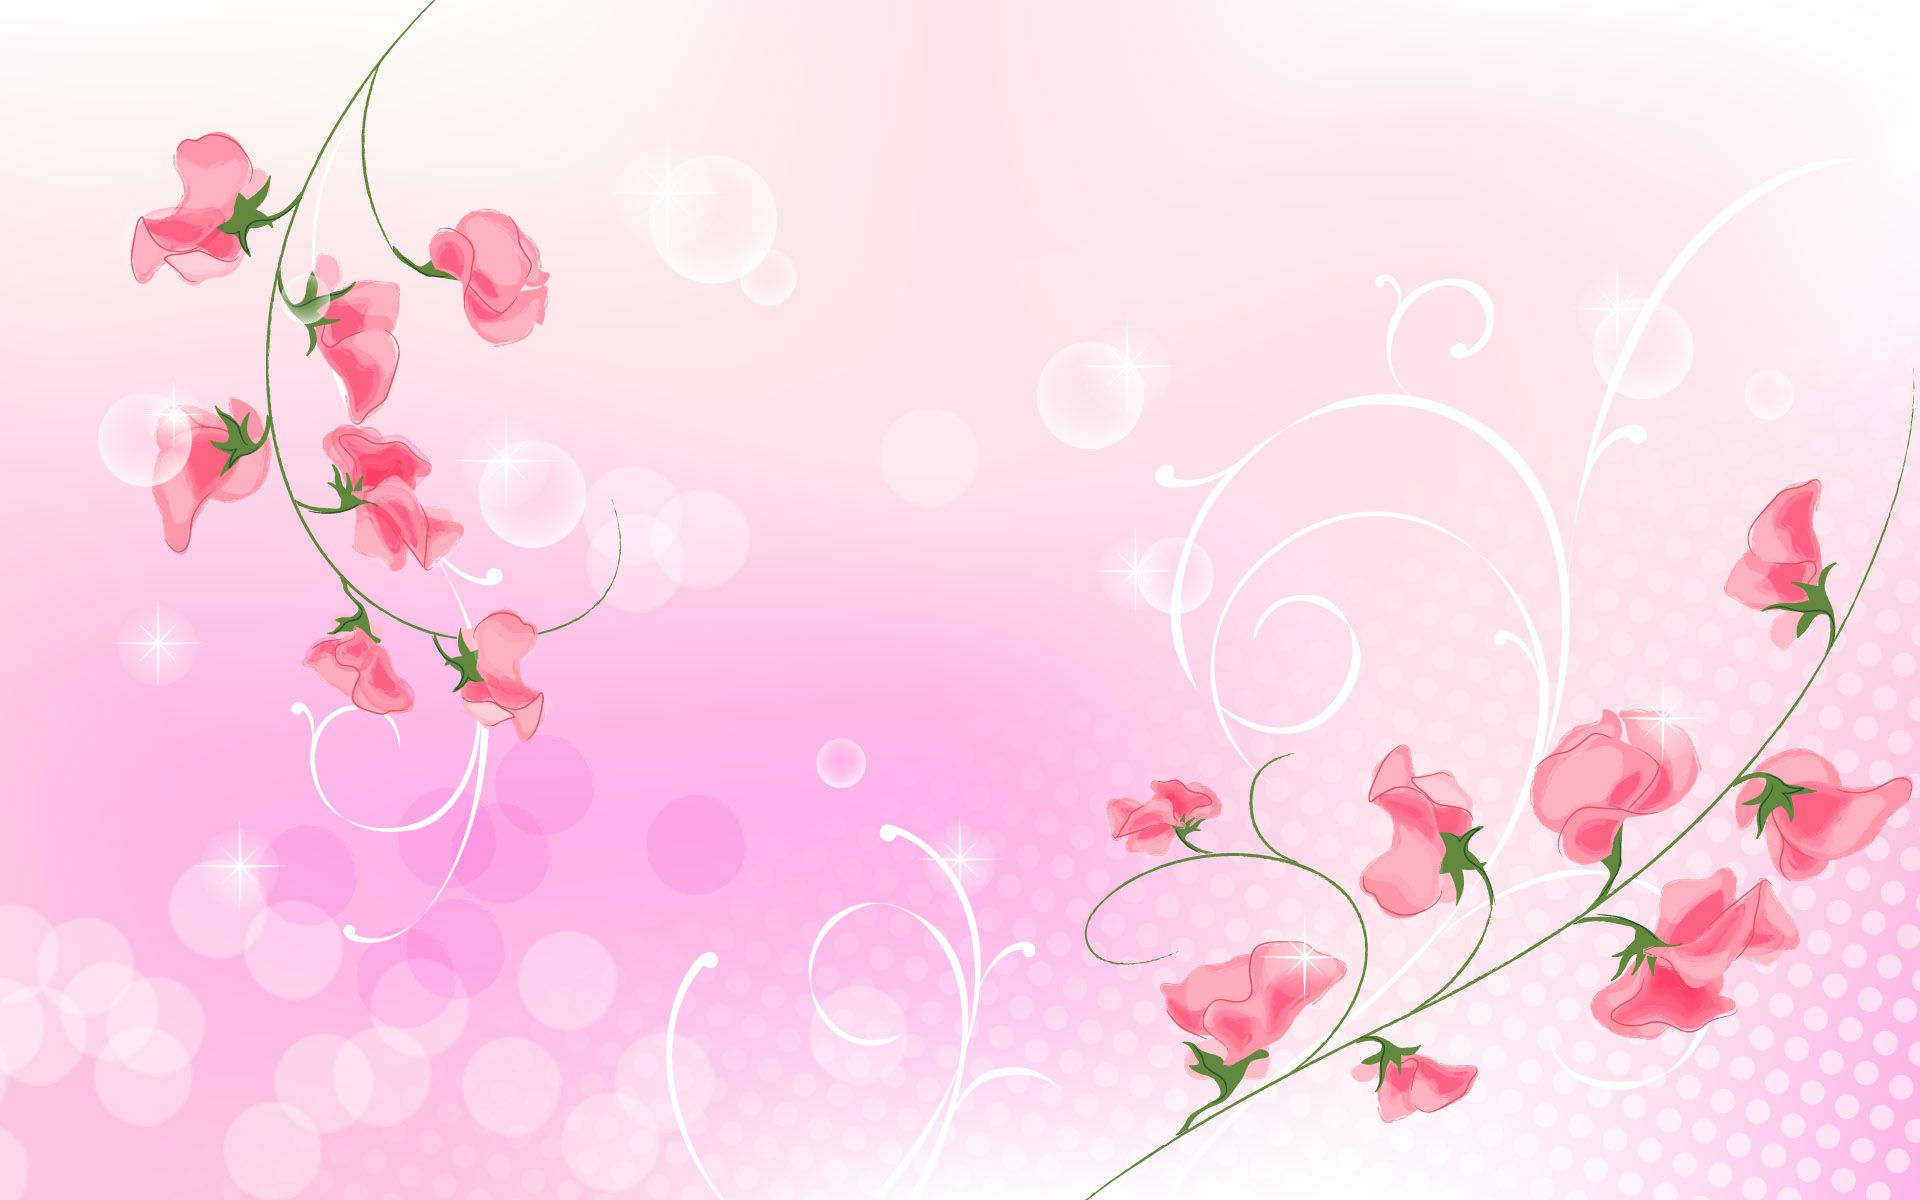 Free Download Floral Backgrounds Flower And Light Pink Background